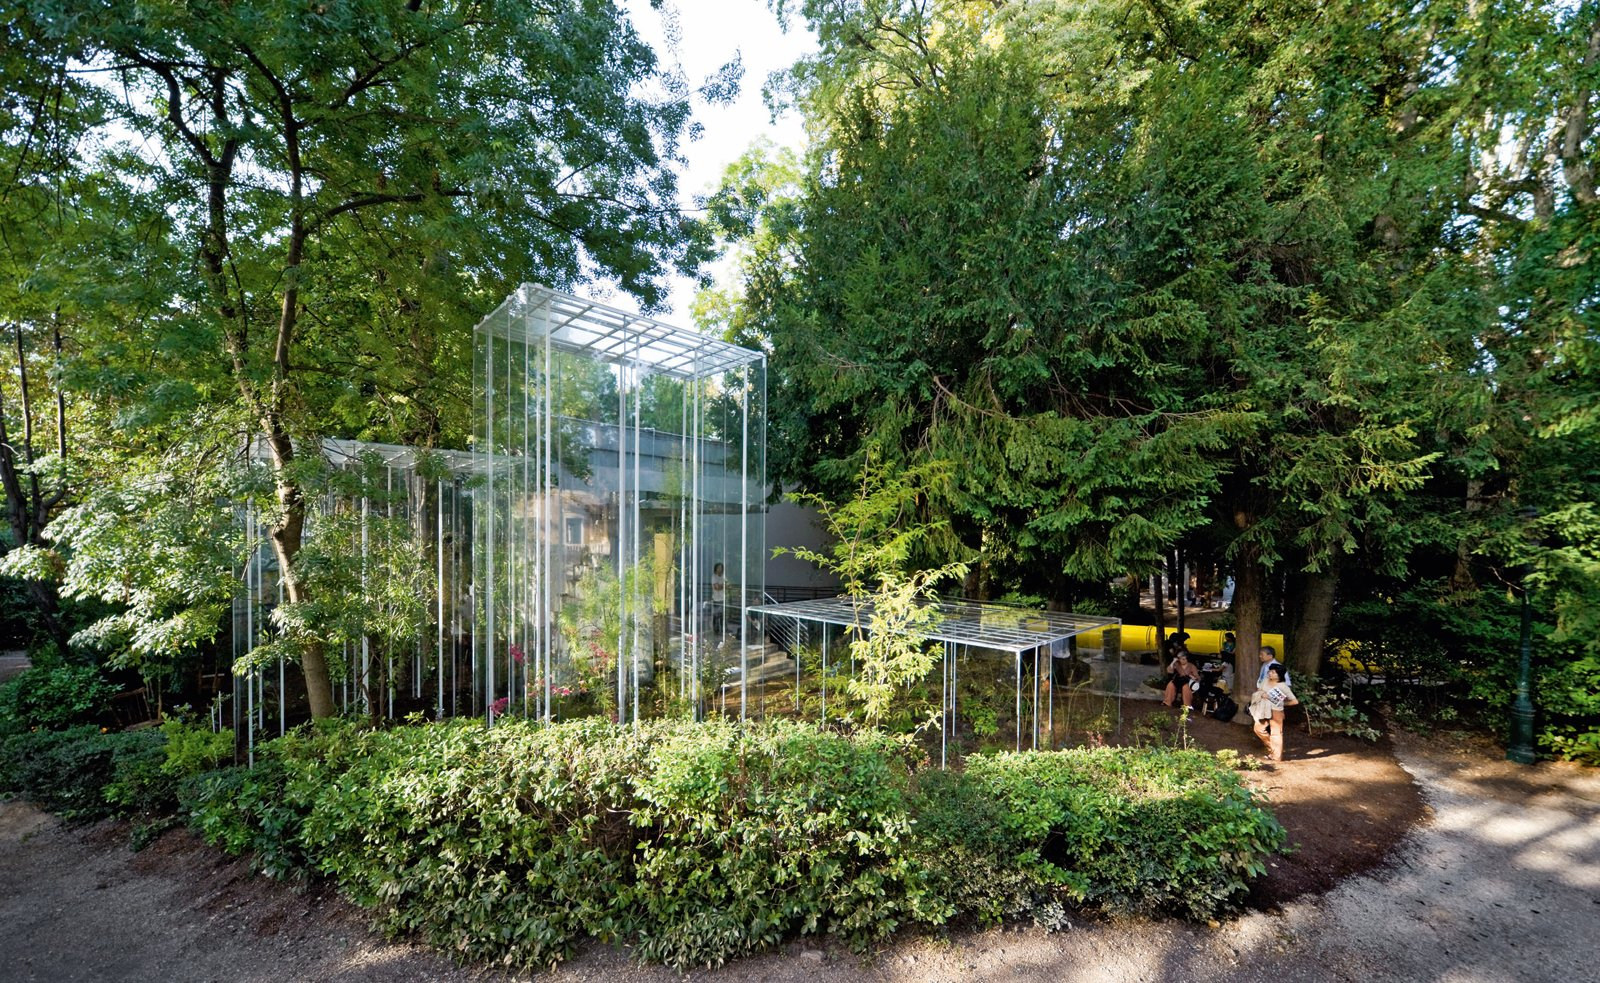 Junya Ishigami's Greenhouses at the Japanese Pavilion of the 2008 Venice Architecture Biennale celebrated architecture and landscape equally. Photo by Iwan Baan  Photo 4 of 8 in 100 Contemporary Green Buildings